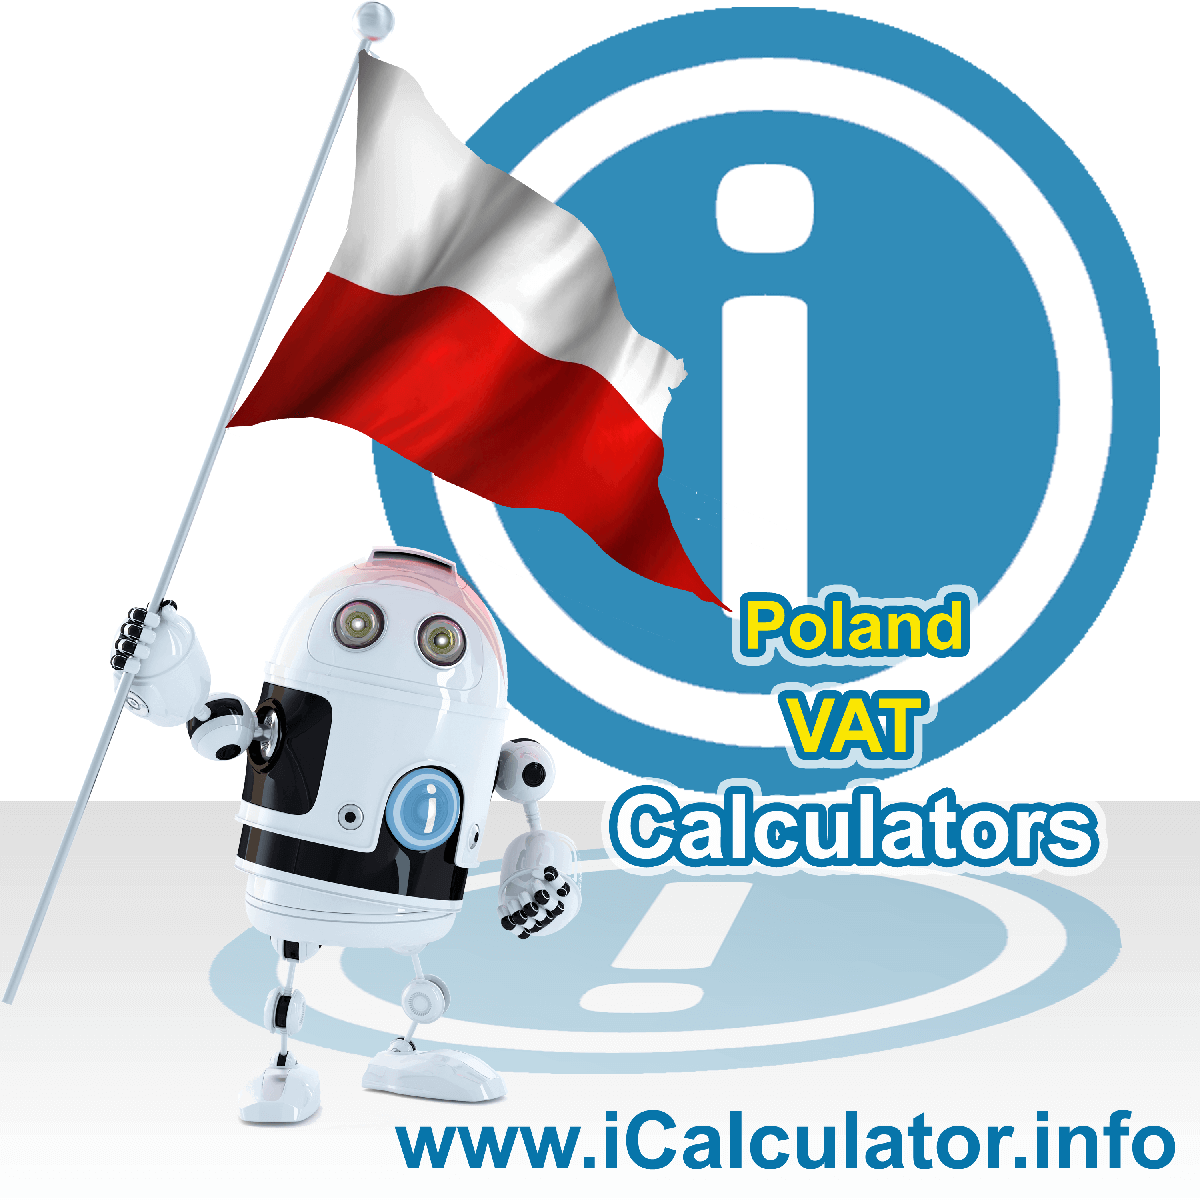 Poland VAT Calculator. This image shows the Poland flag and information relating to the VAT formula used for calculating Value Added Tax in Poland using the Poland VAT Calculator in 2021